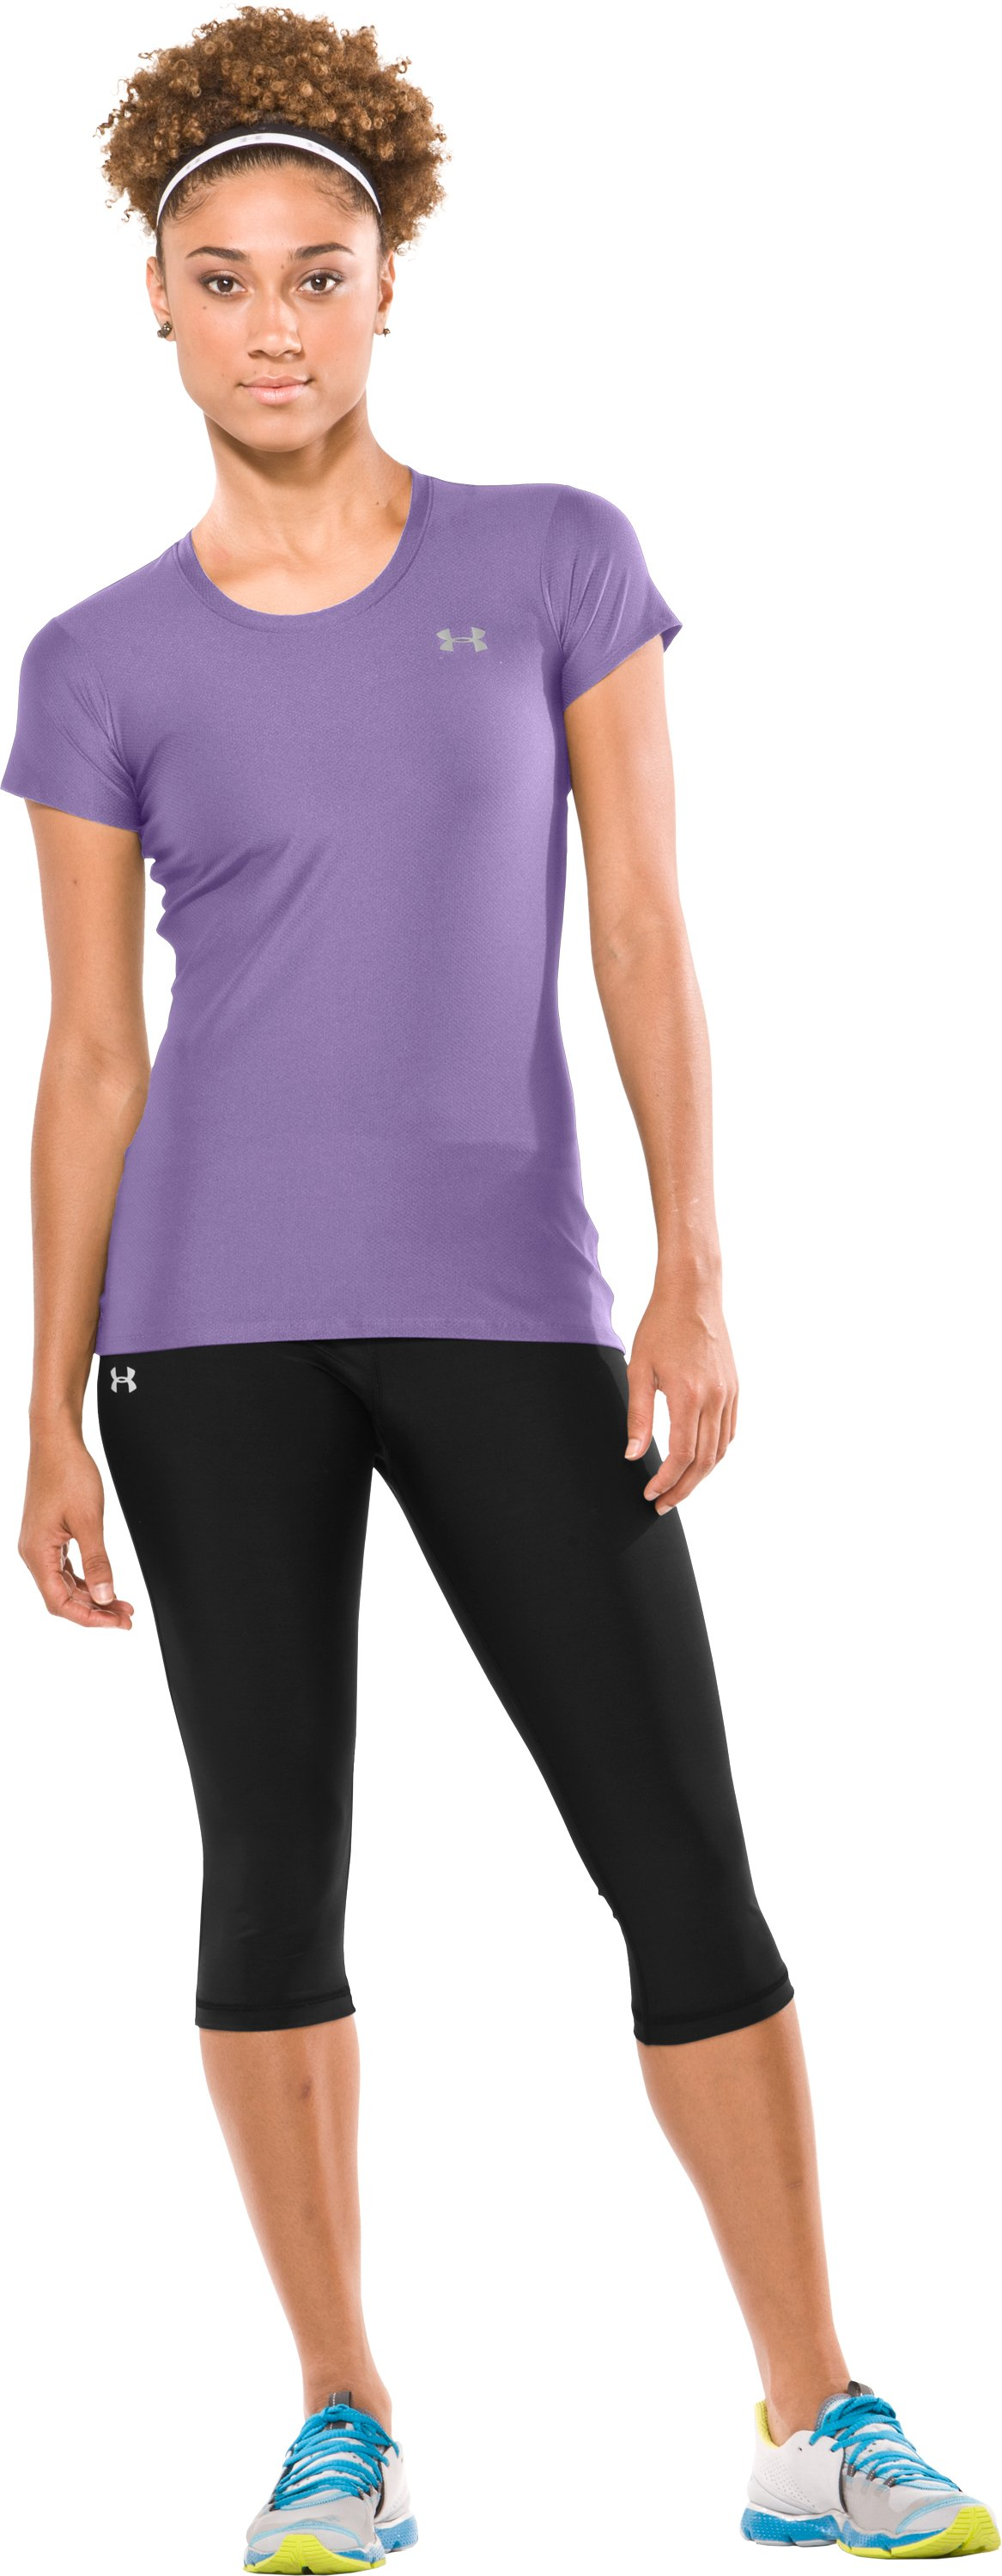 Women's Fitted HeatGear® Short Sleeve T-Shirt, Celebrate